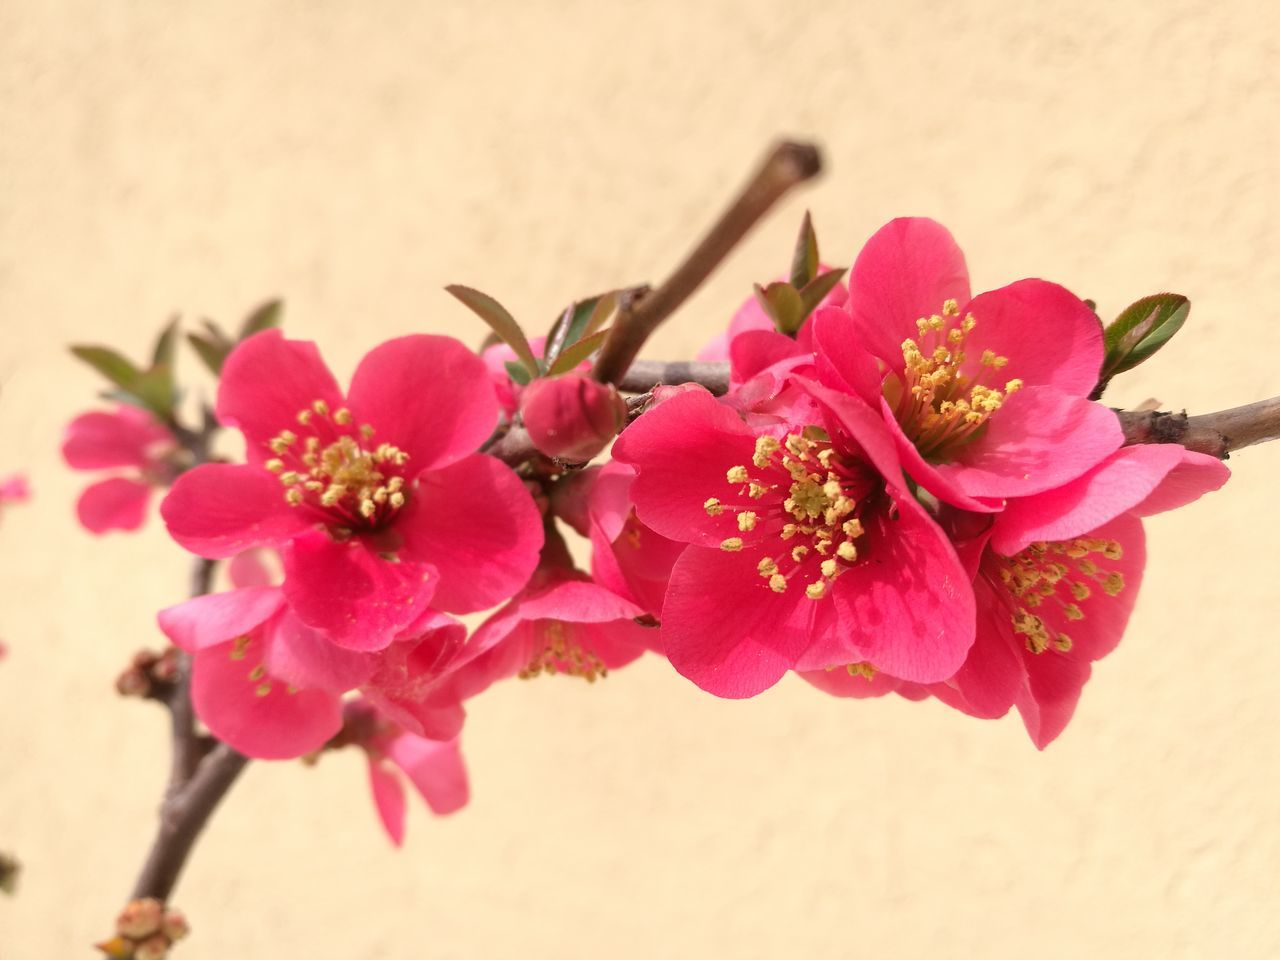 Flower Flower Head Nature Fragility Freshness Beauty In Nature Blossom Springtime Chaenomeles Japonica Millennial Pink Pink Chaenomeles Freshness Pink Color Petal Nature Beauty In Nature Plant Growth EyeEmNewHere